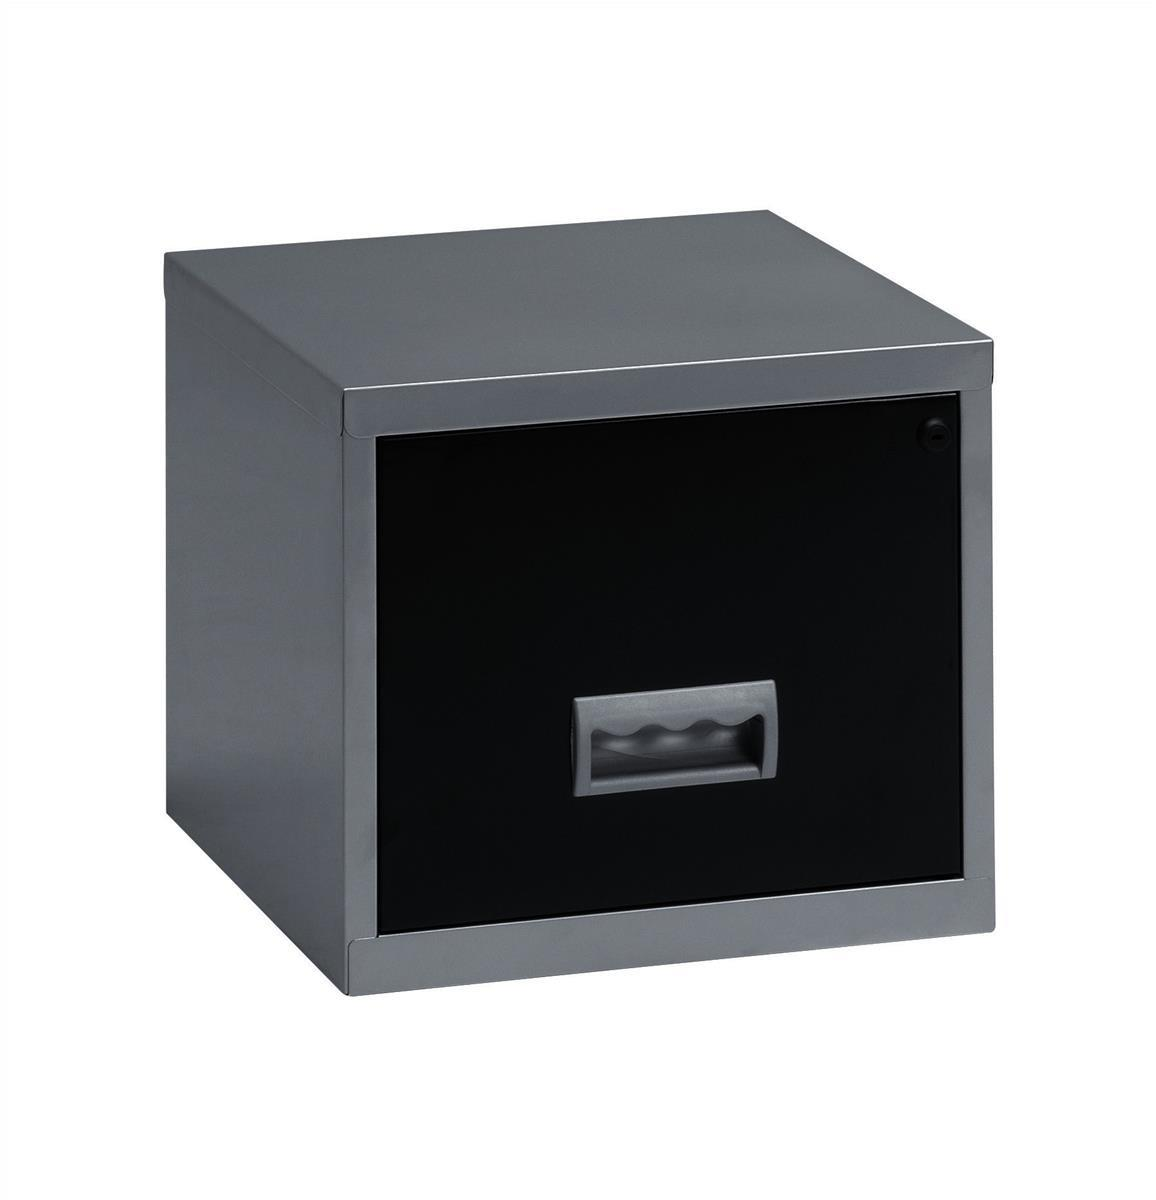 Image for Pierre Henry Filing Cabinet Steel Lockable 1 Drawer A4 Silver and Black Ref 099071